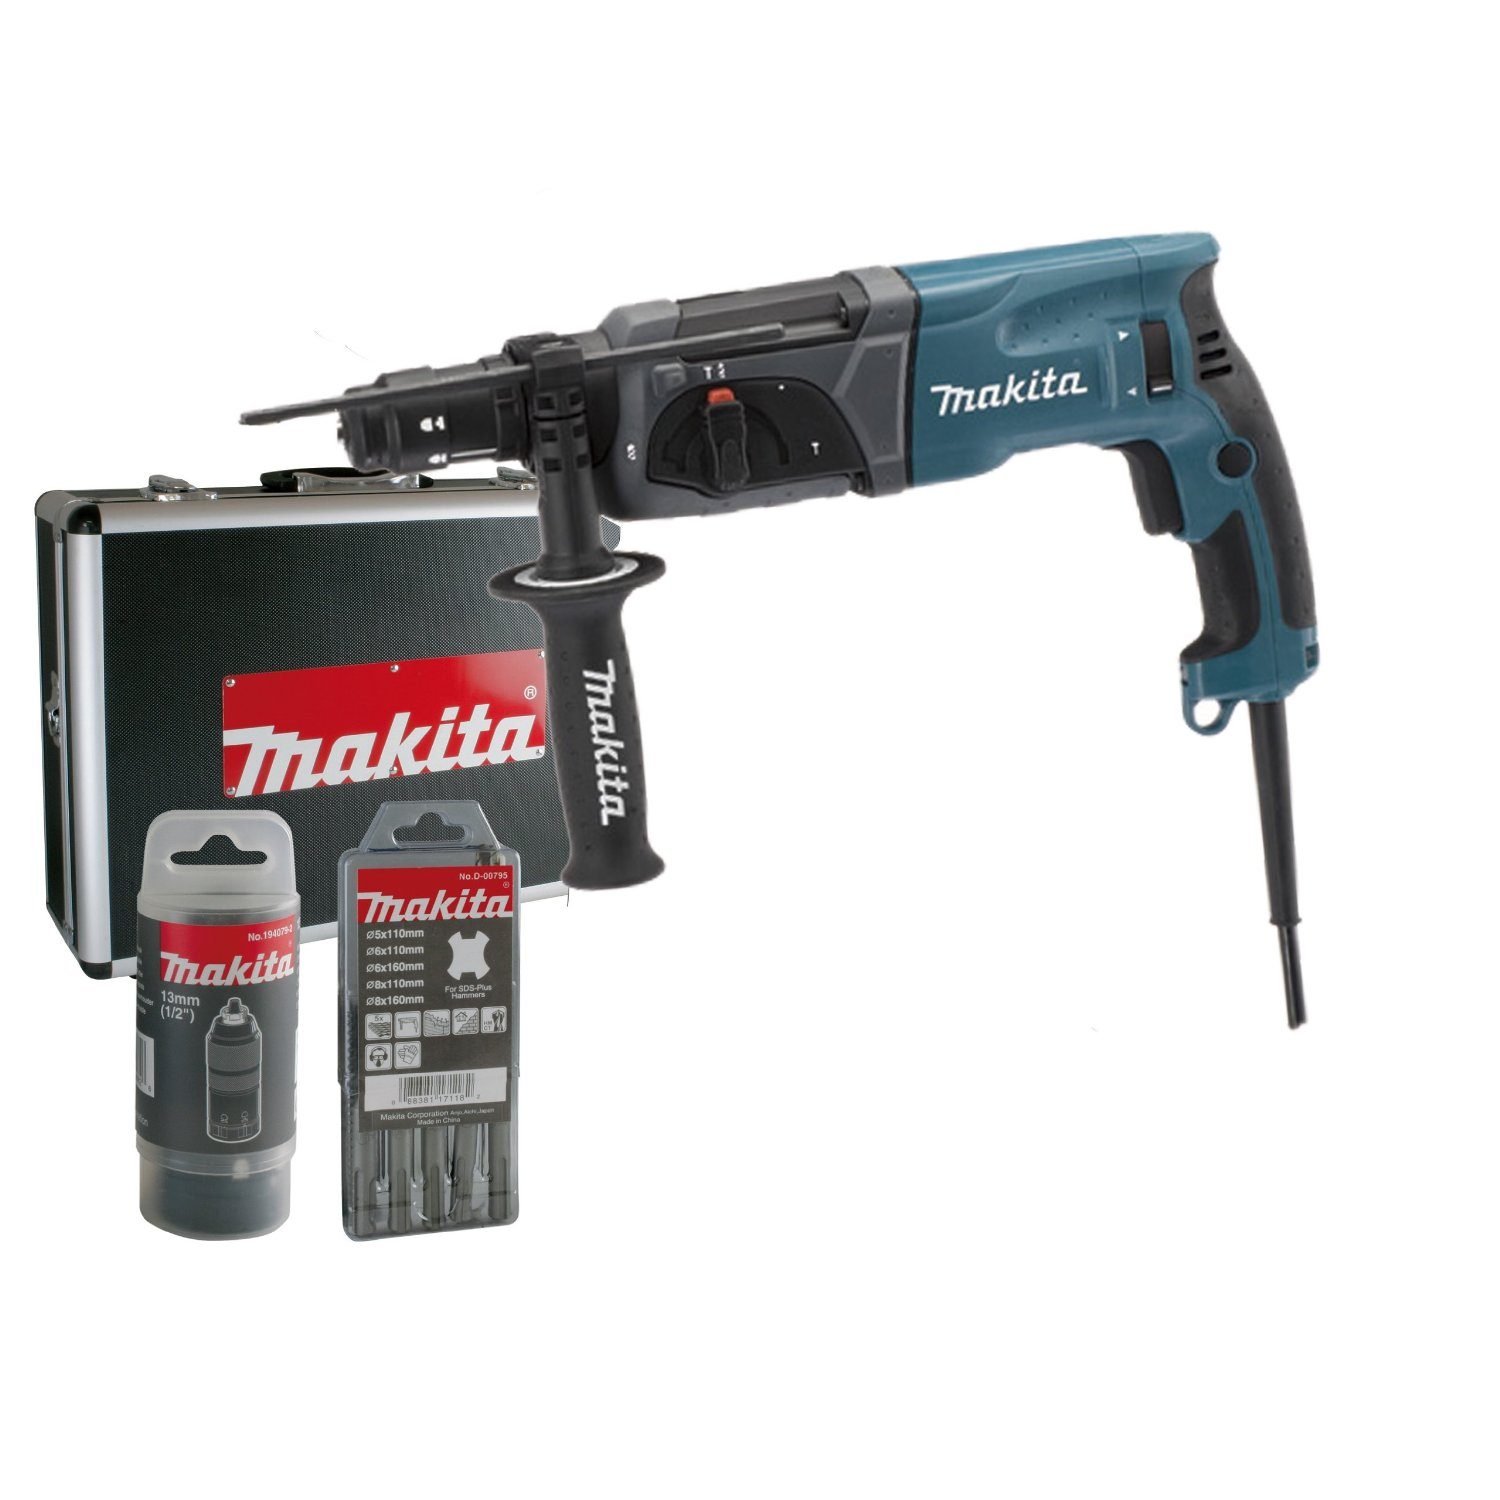 makita hr2470ftx bohrhammer set im test neu. Black Bedroom Furniture Sets. Home Design Ideas